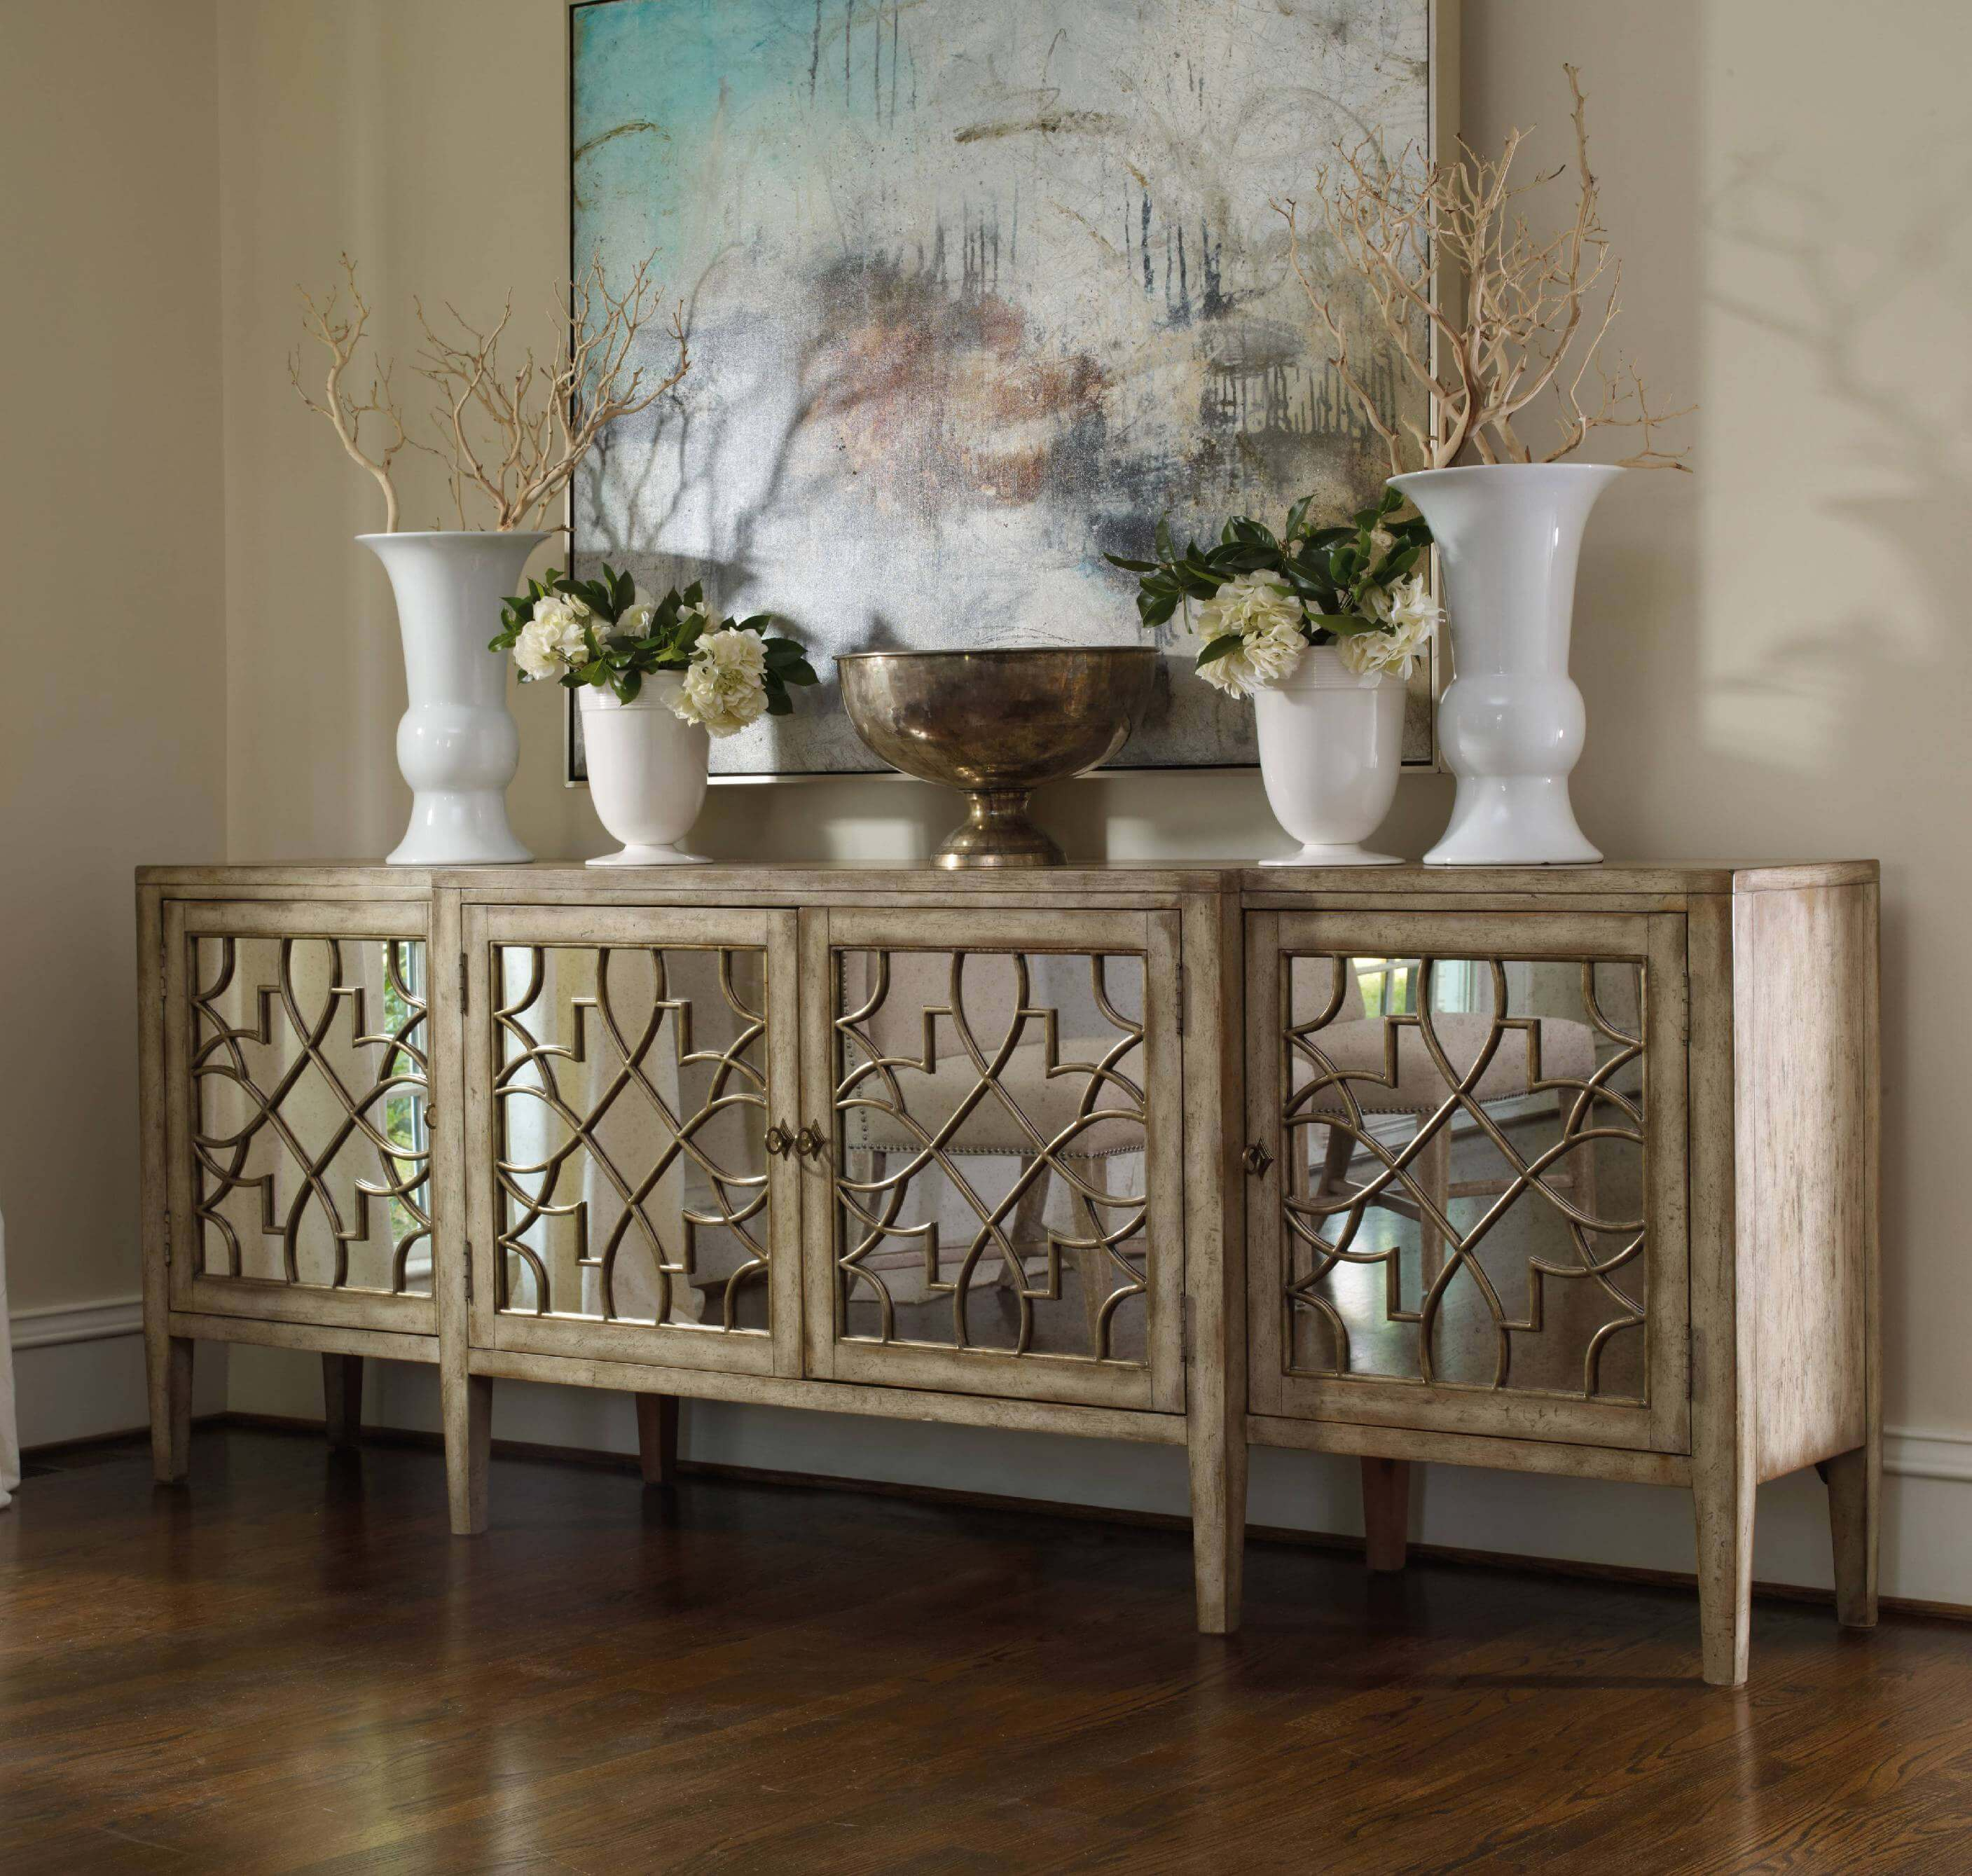 30 Best Rustic Glam Decoration Ideas And Designs For 2019 Pertaining To Natural Wood Mirrored Media Console Tables (Photo 23 of 30)